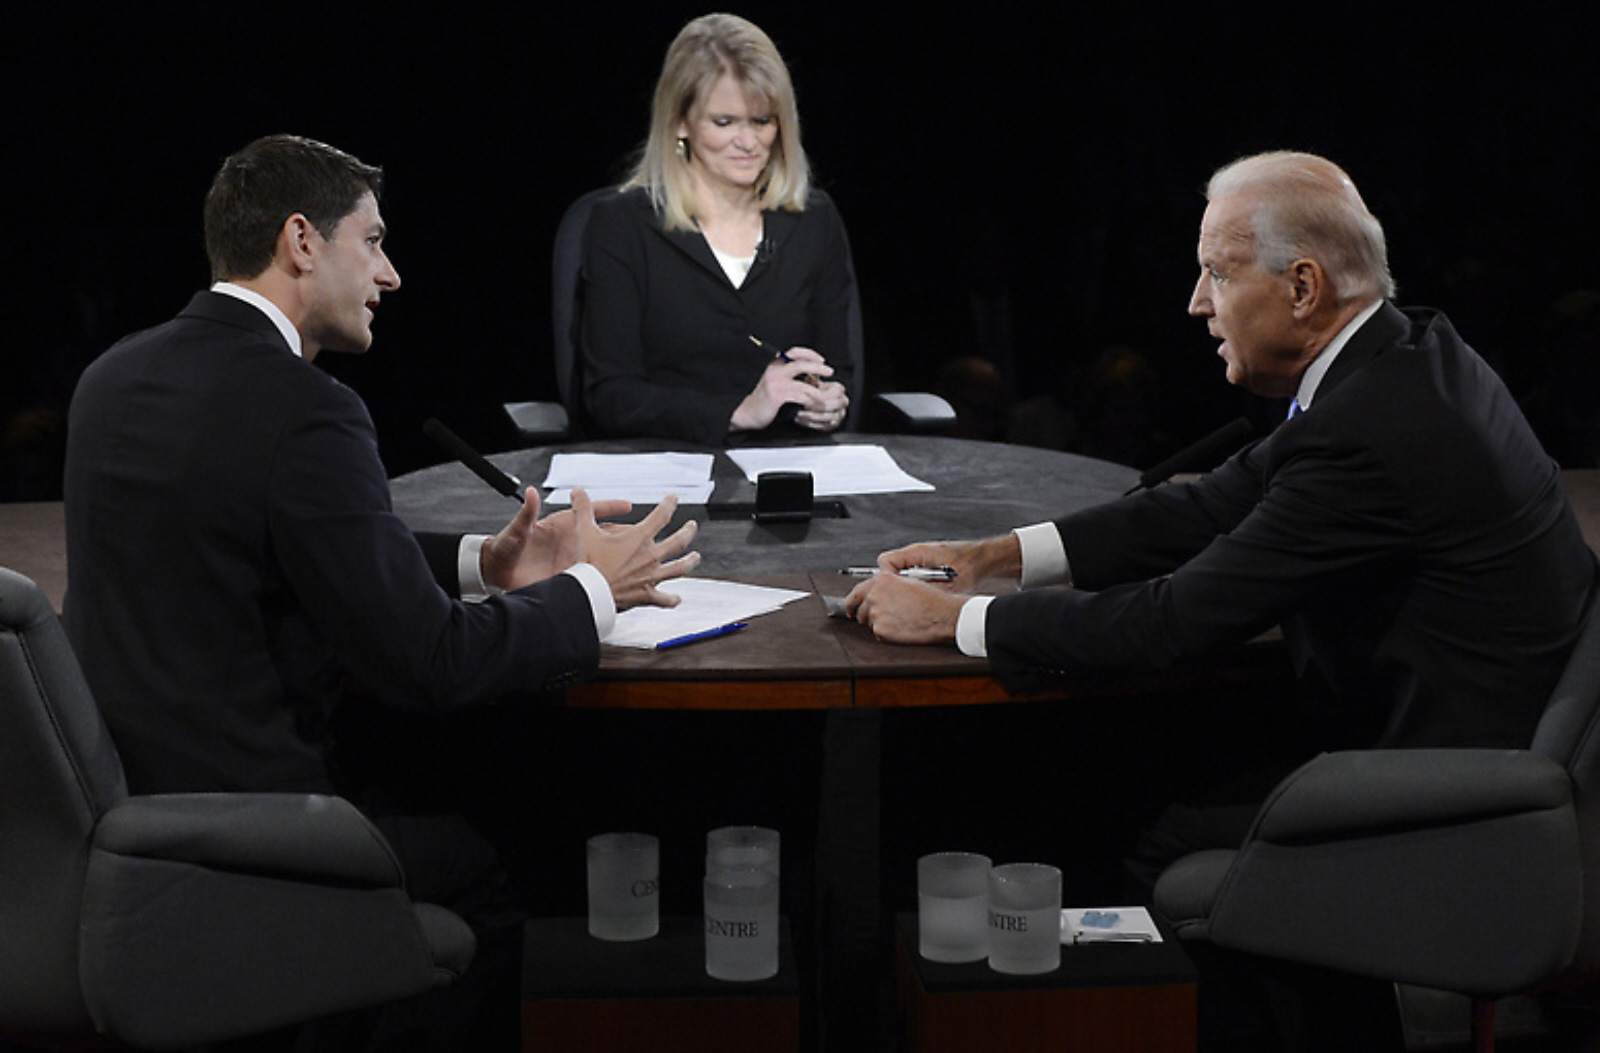 biden-vs-ryan-debate-2012-face-off